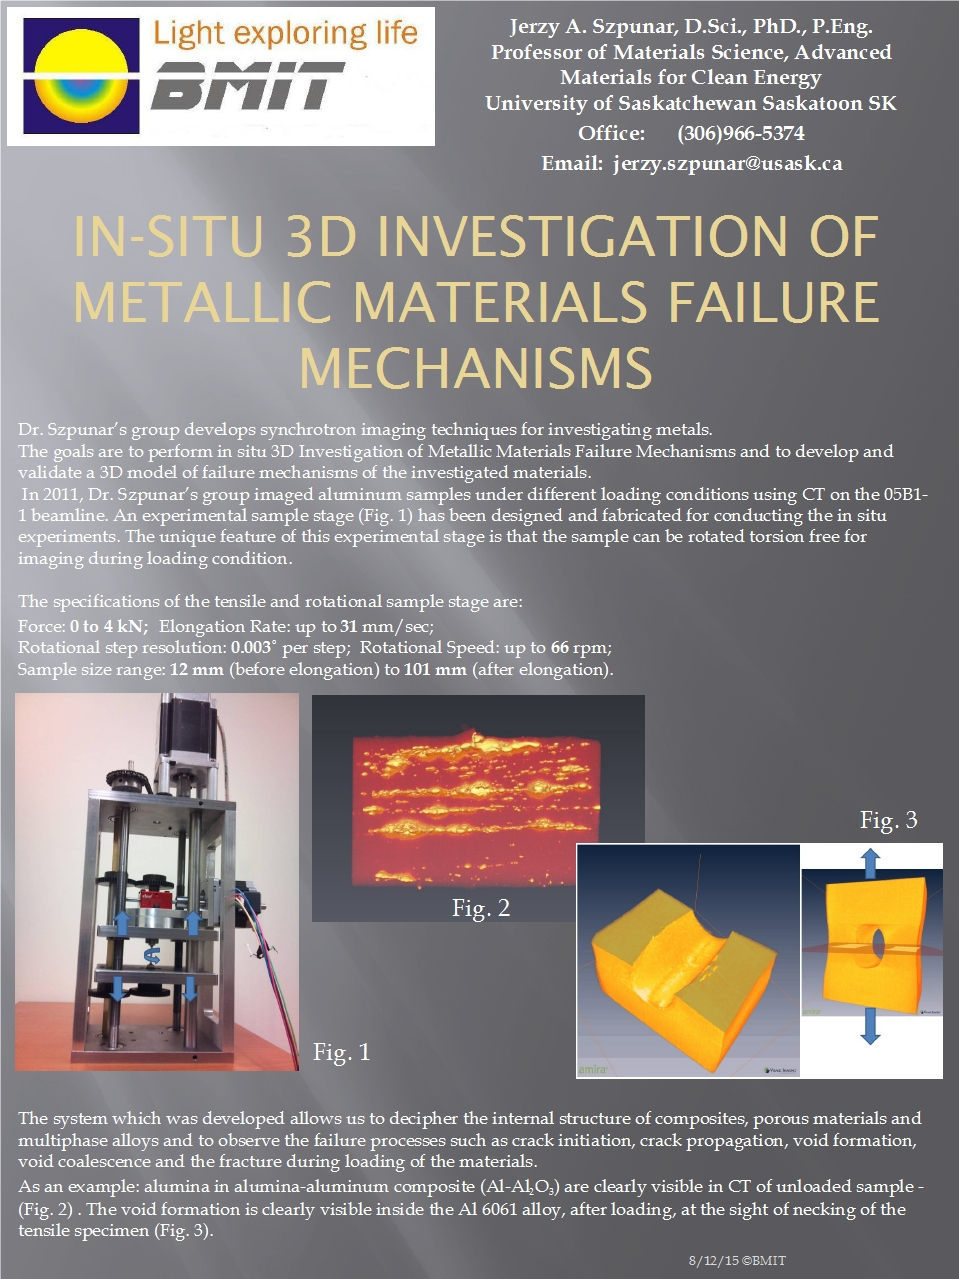 In-situ 3D Investigation of Metallic Materials' Failure Mechanisms Image